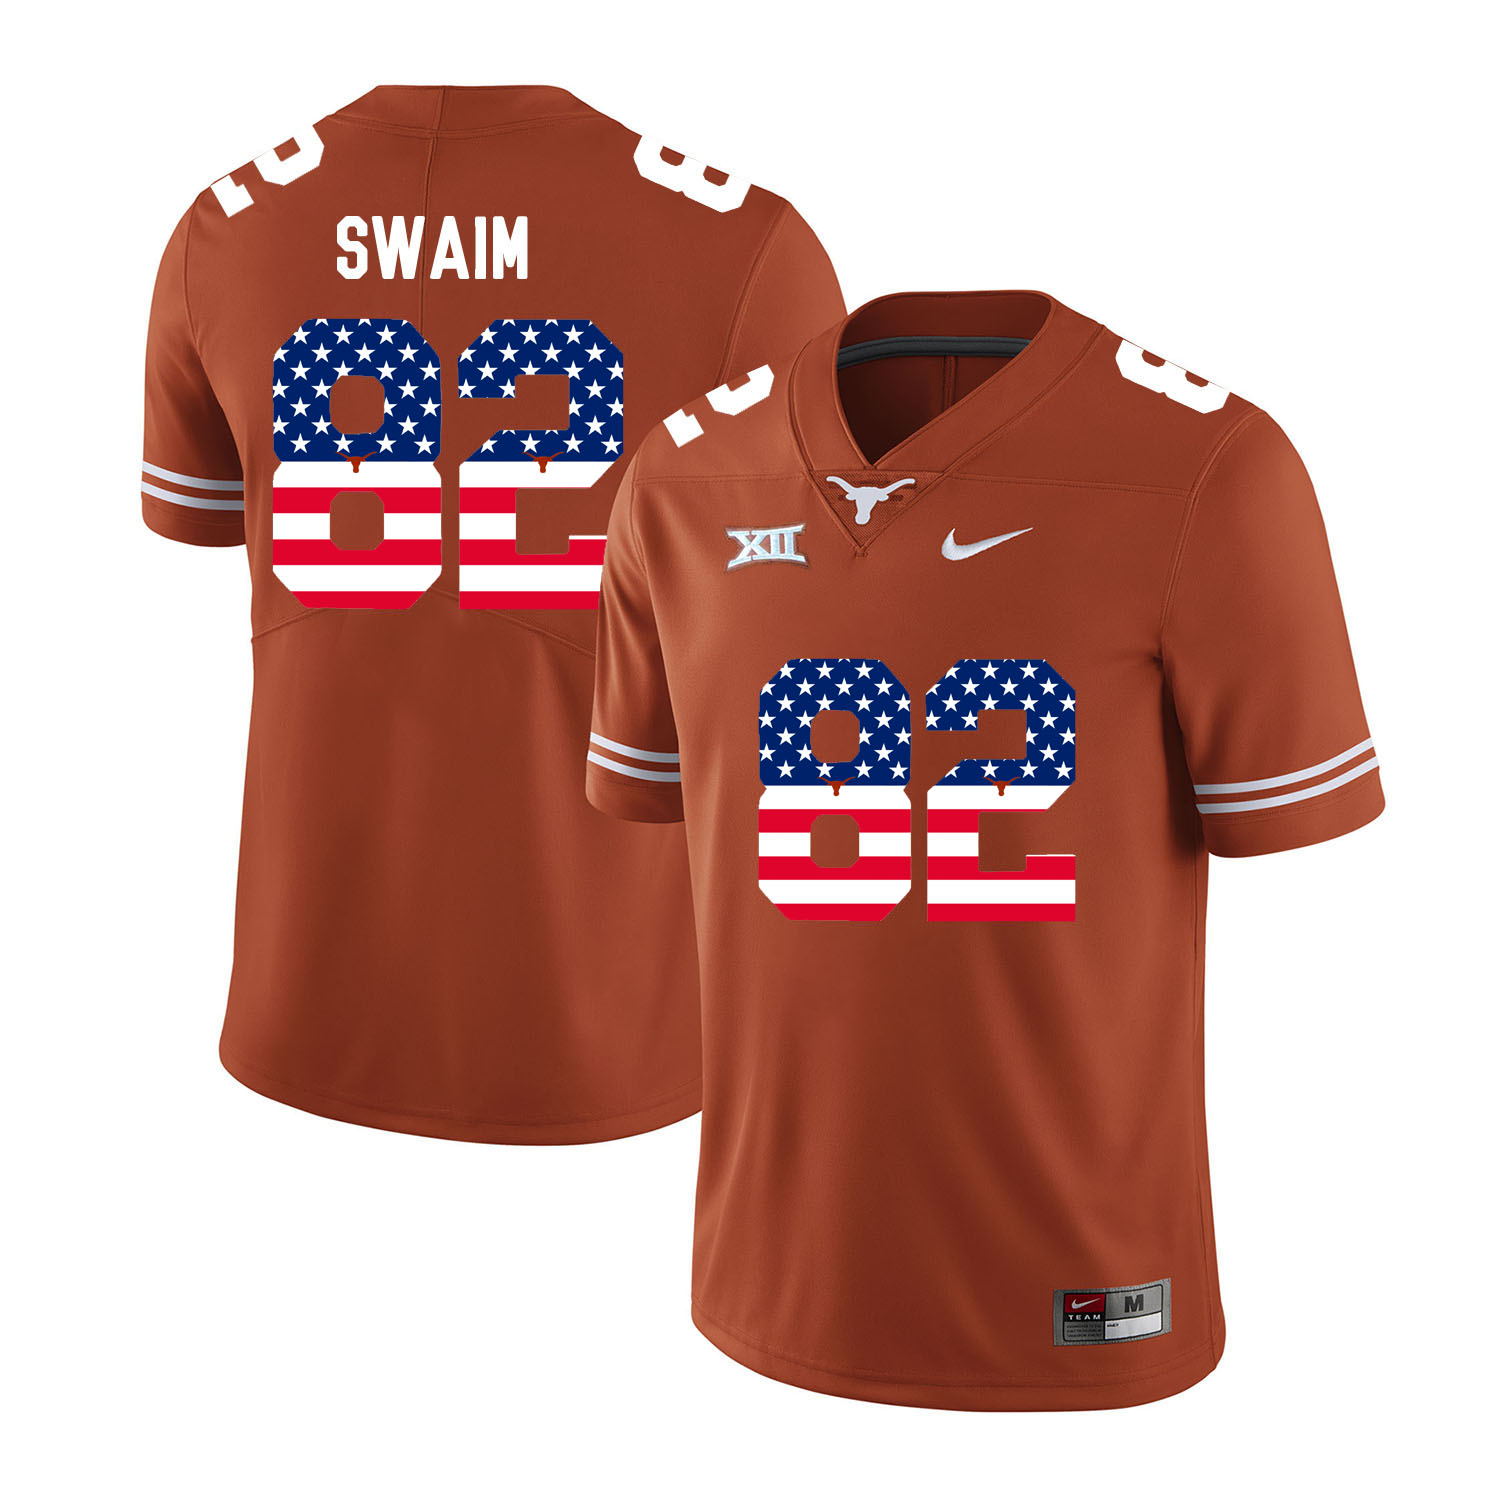 Texas Longhorns 82 Geoff Swaim Orange USA Flag Nike College Football Jersey